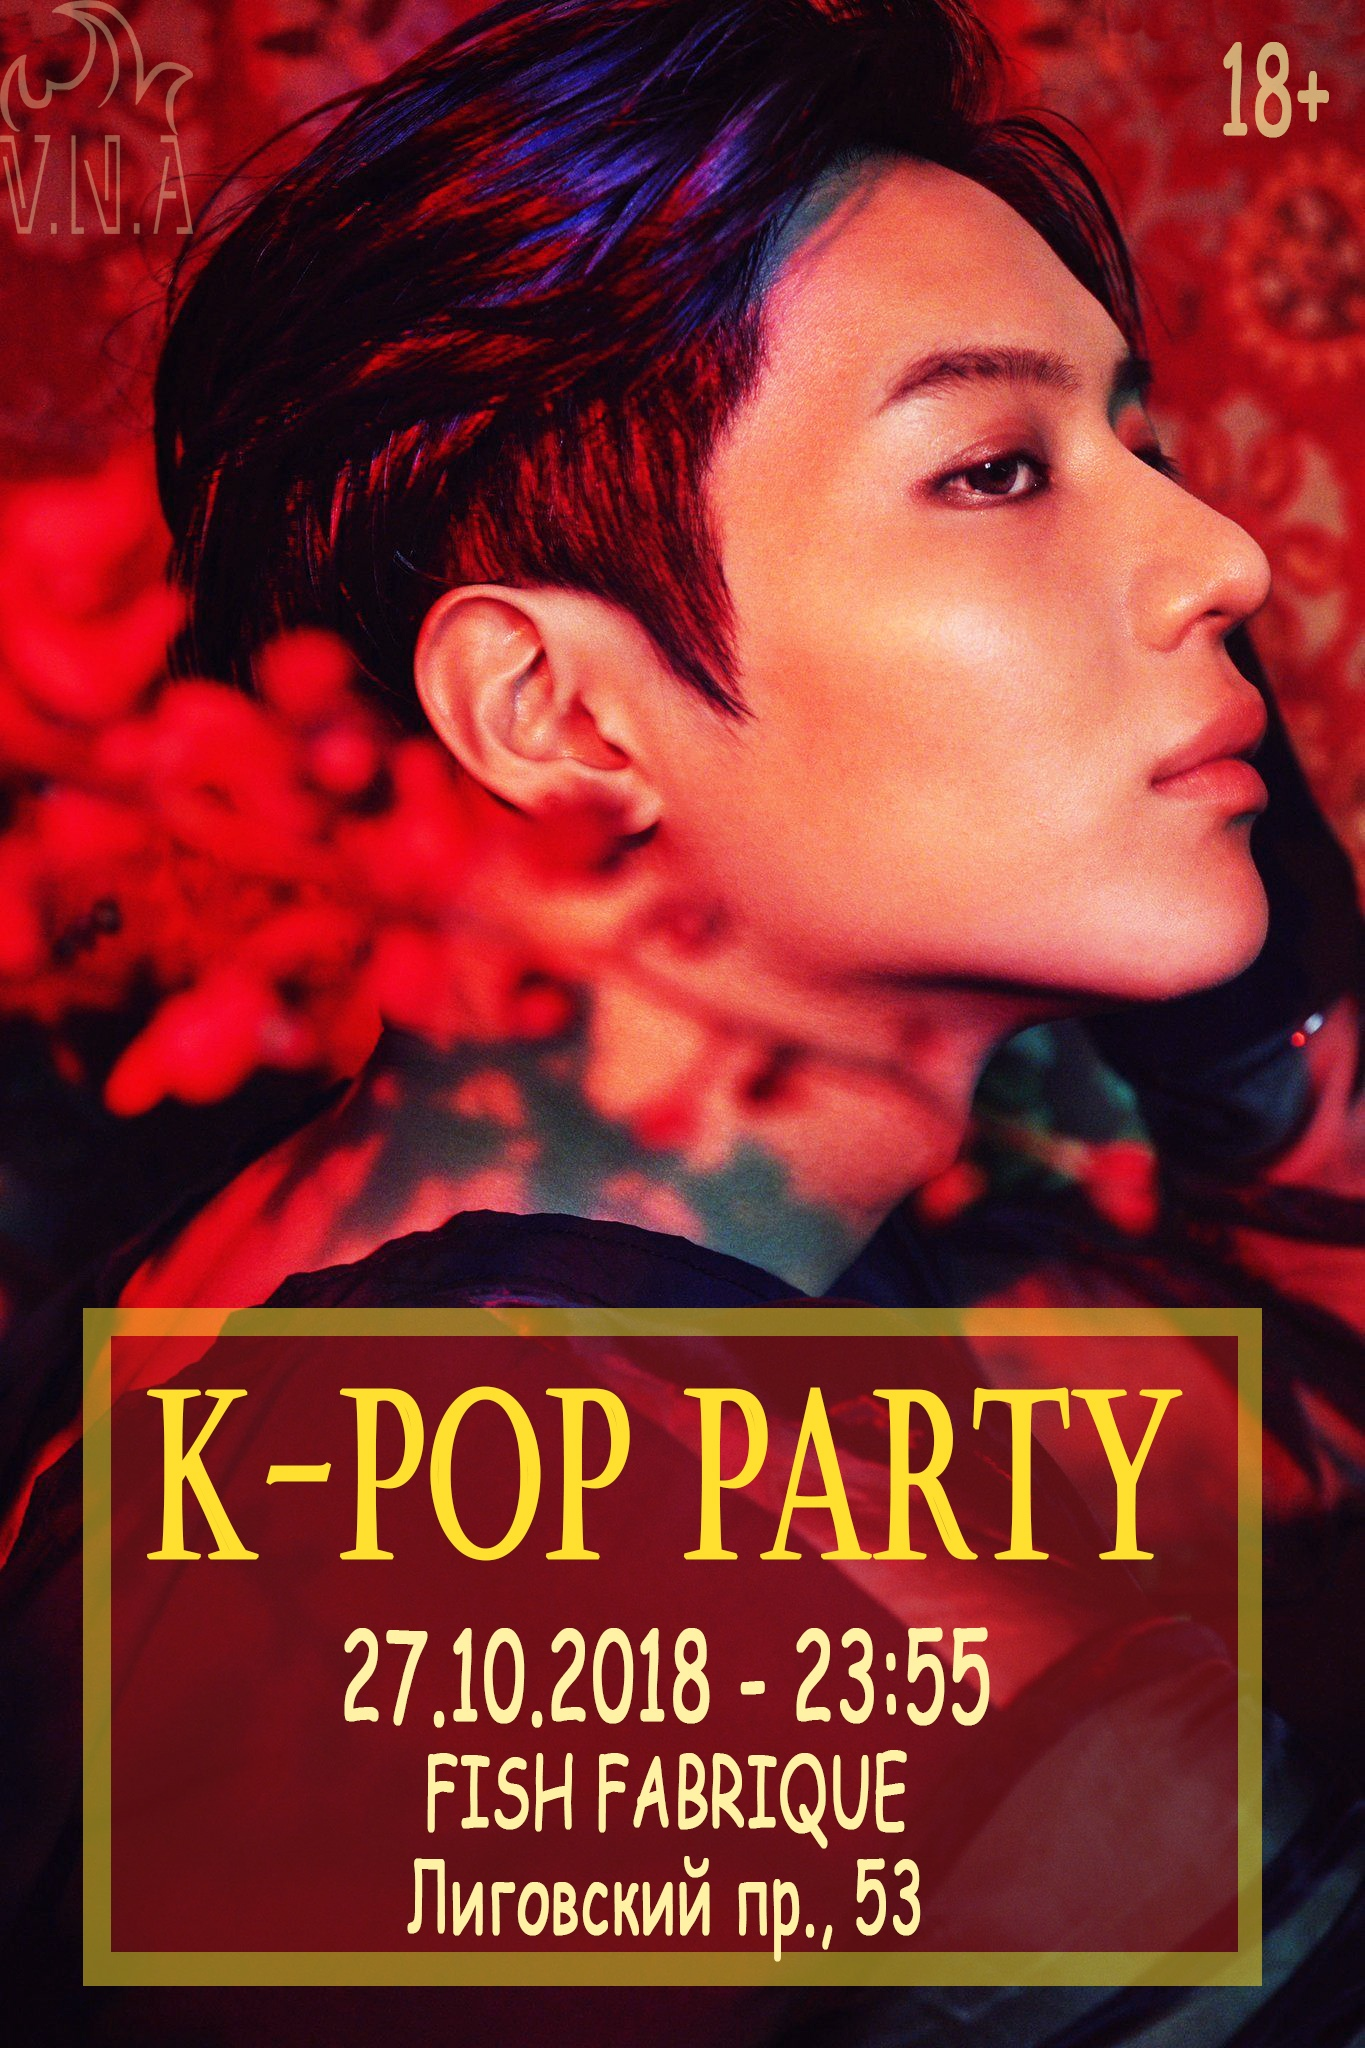 K-POP HALLOWEEN PARTY 27.10.2018